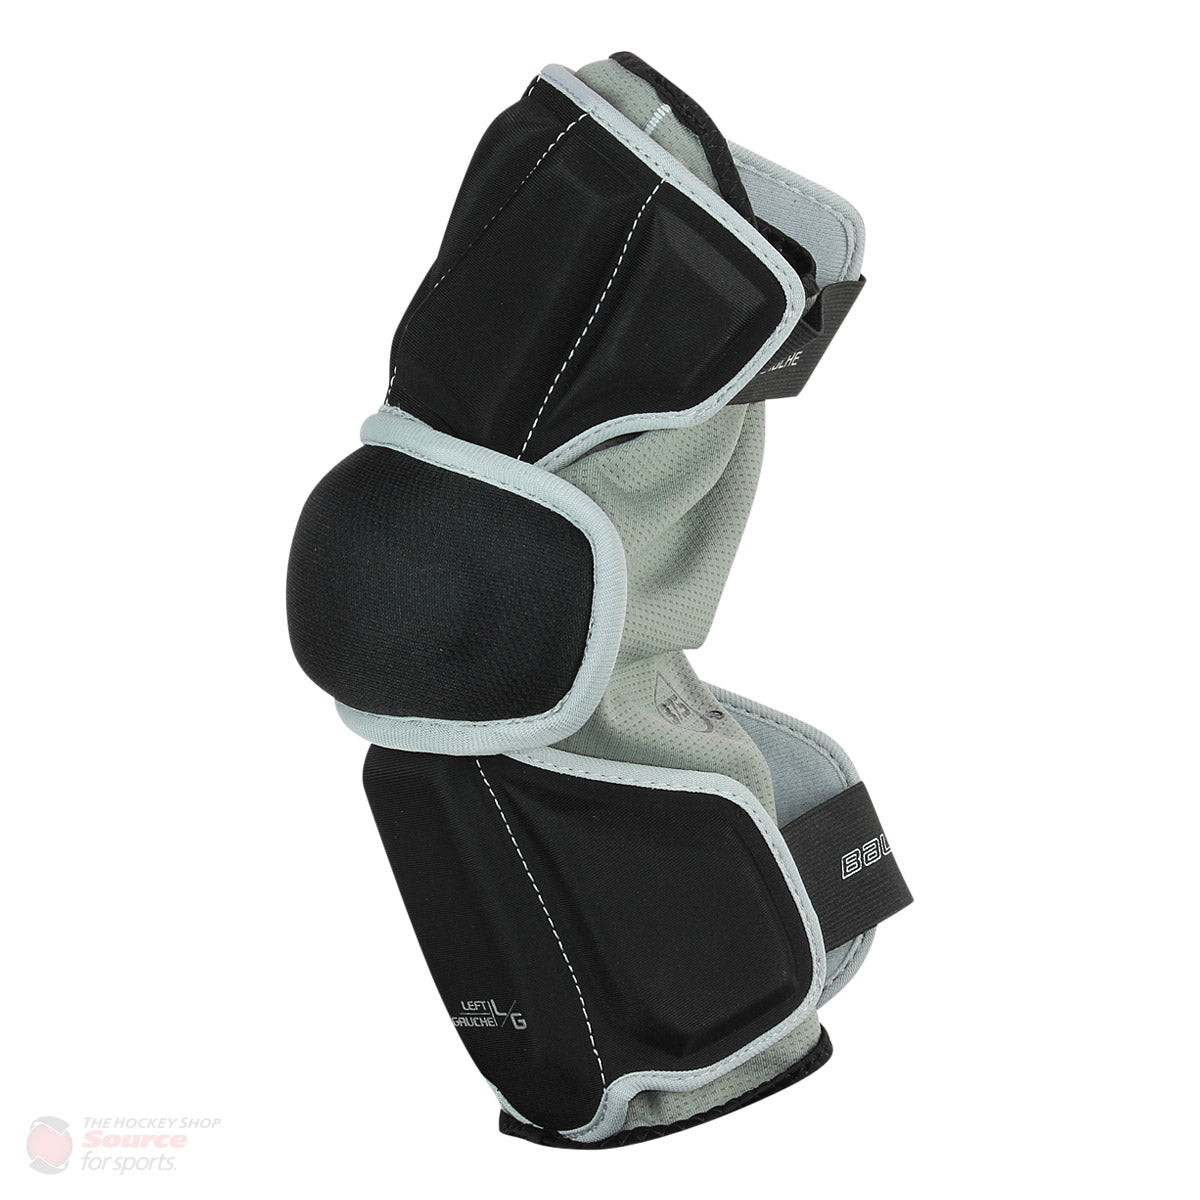 Bauer Official's Elbow Pads